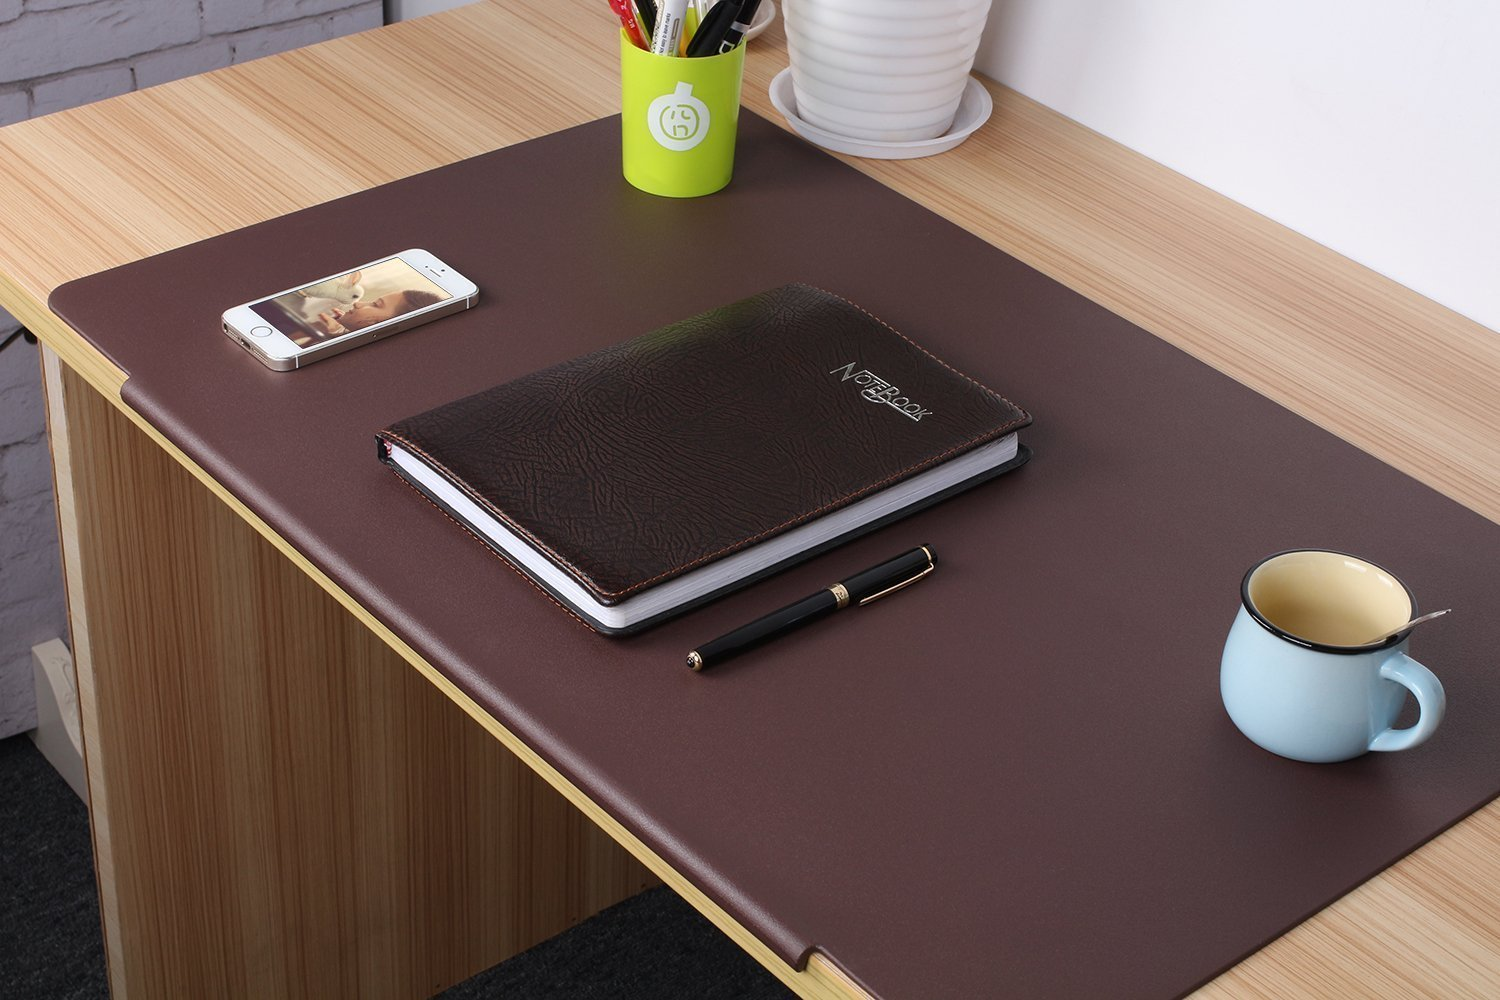 LOHOME Desk Pads Artificial Leather Laptop Mat with Fixation Lip, Perfect Desk Mate for Office and Home, Rectangular, Large, Black DeskMat_Black